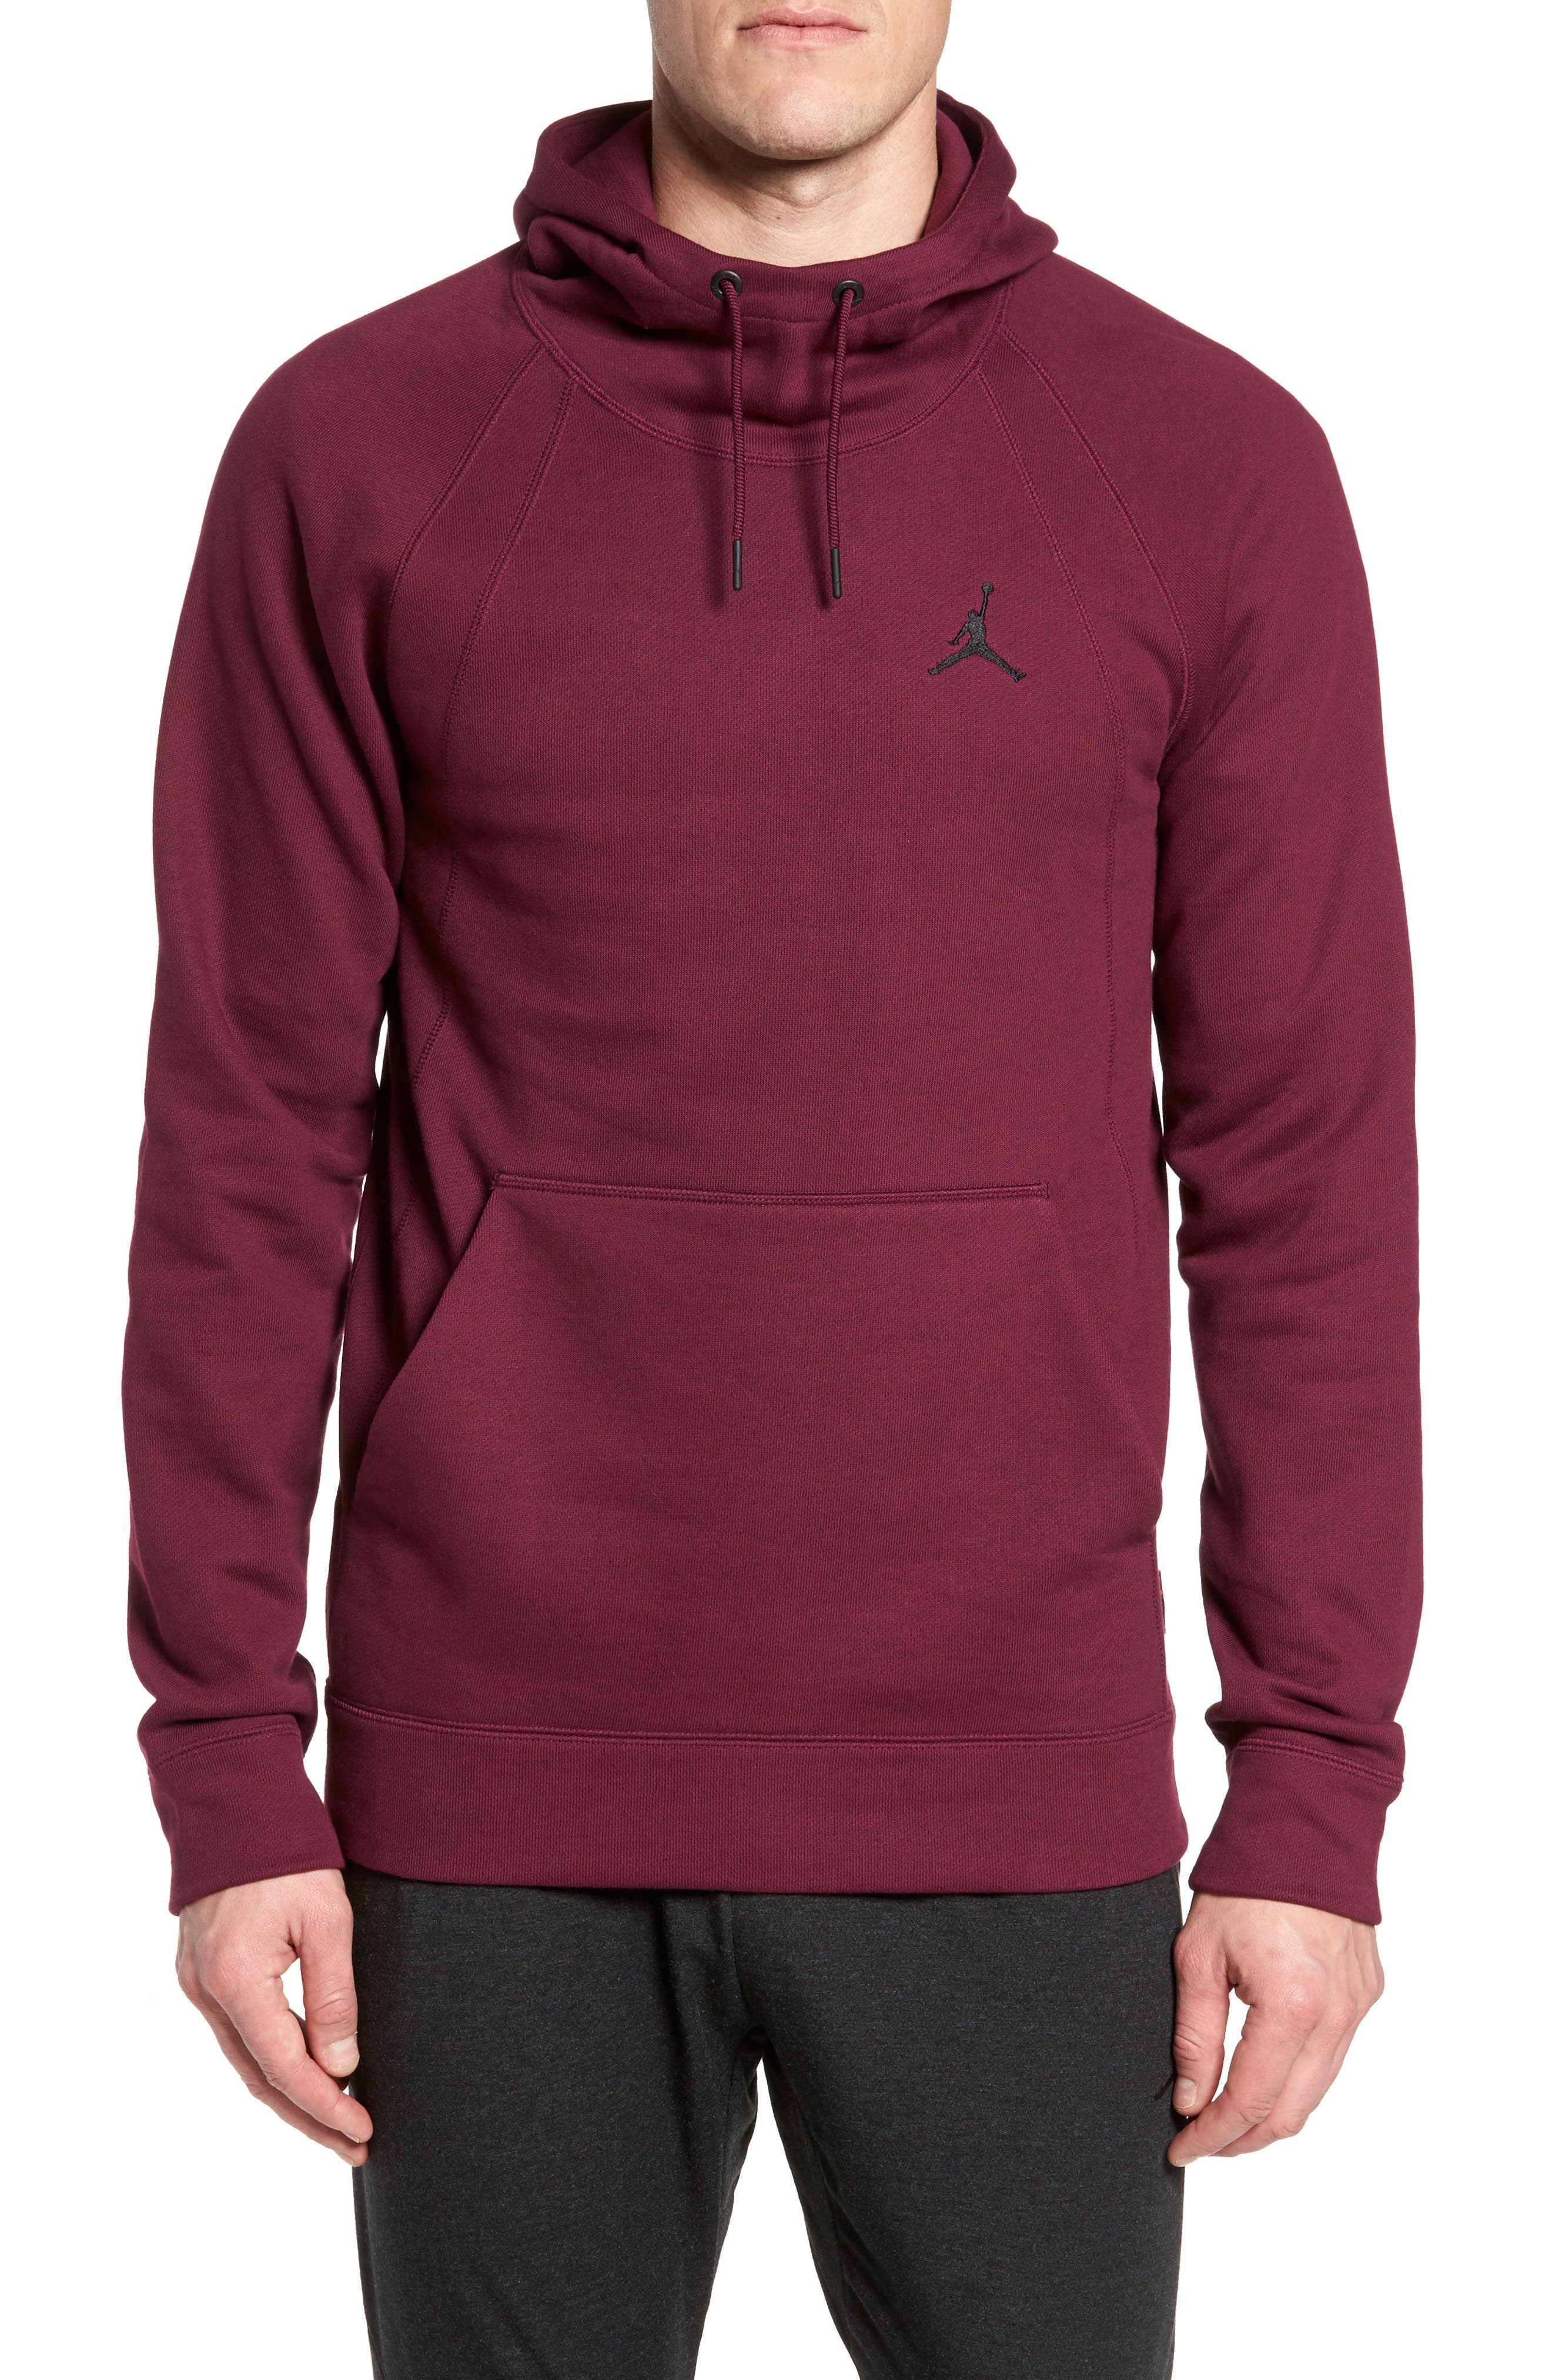 Alternate Image 1 Selected - Nike Jordan Sportswear Fleece Hoodie